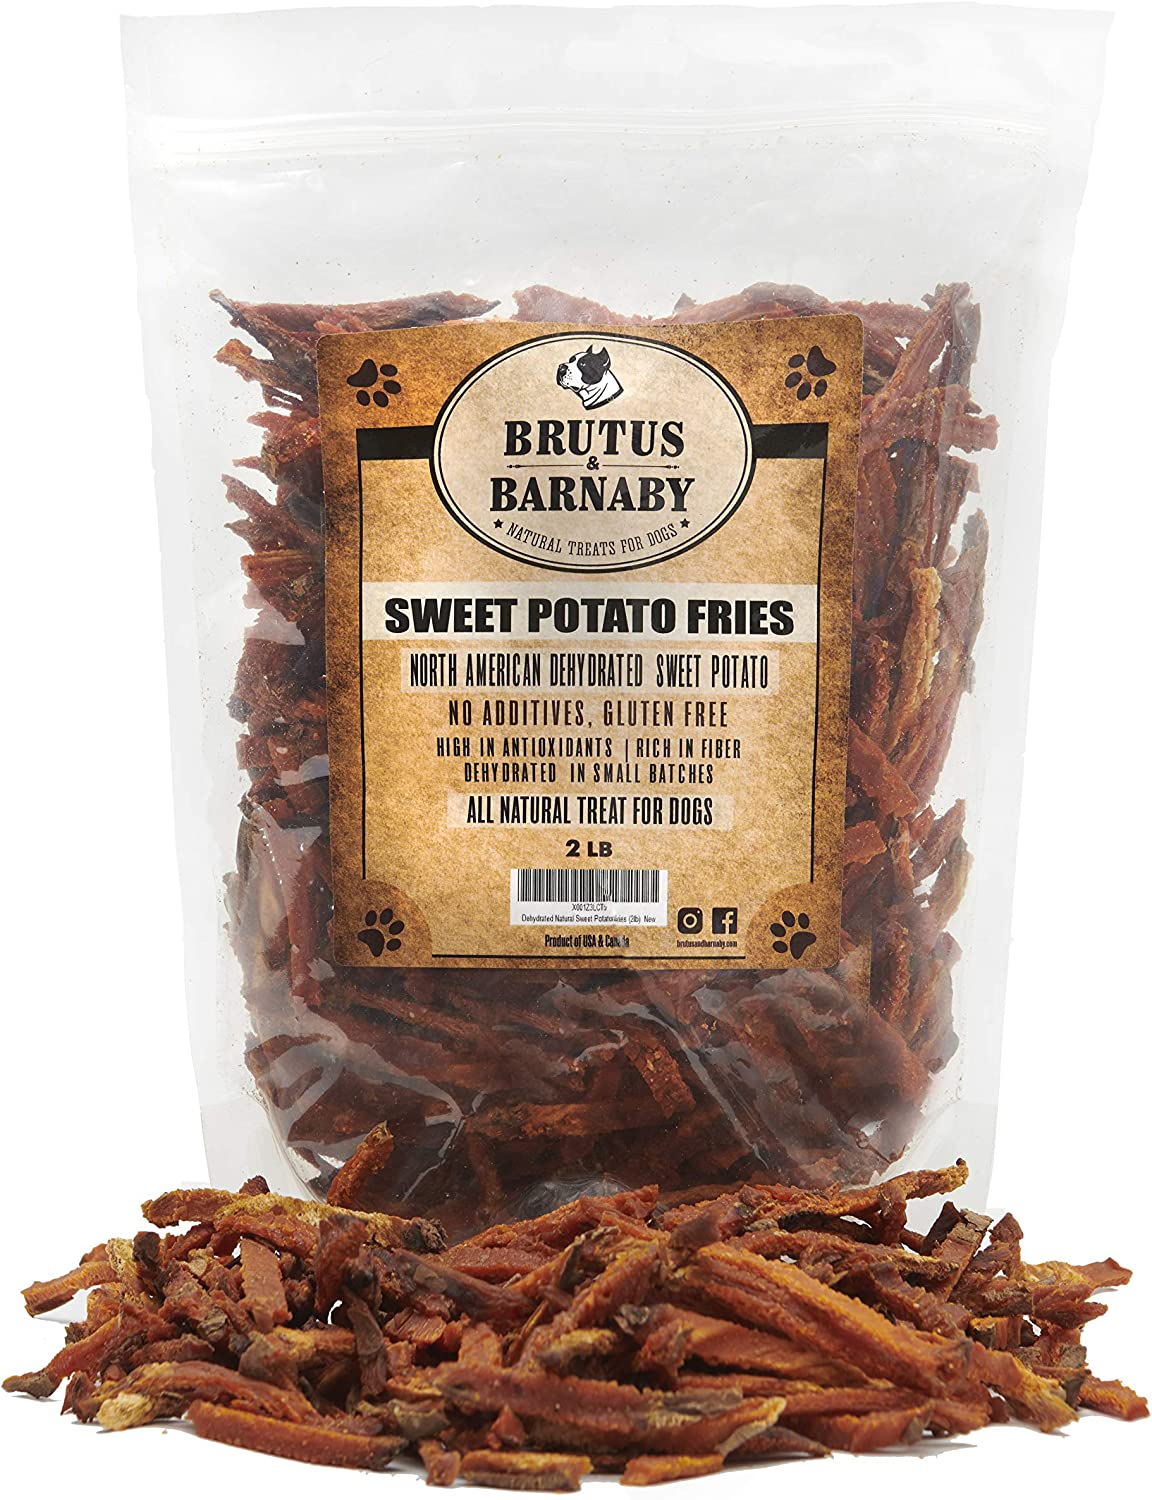 Brutus Barnaby Sweet Potato Dog Treats- No Additive Dehydrated Sweet Potato Fries, Grain Free, Gluten Free and No Preservatives Added